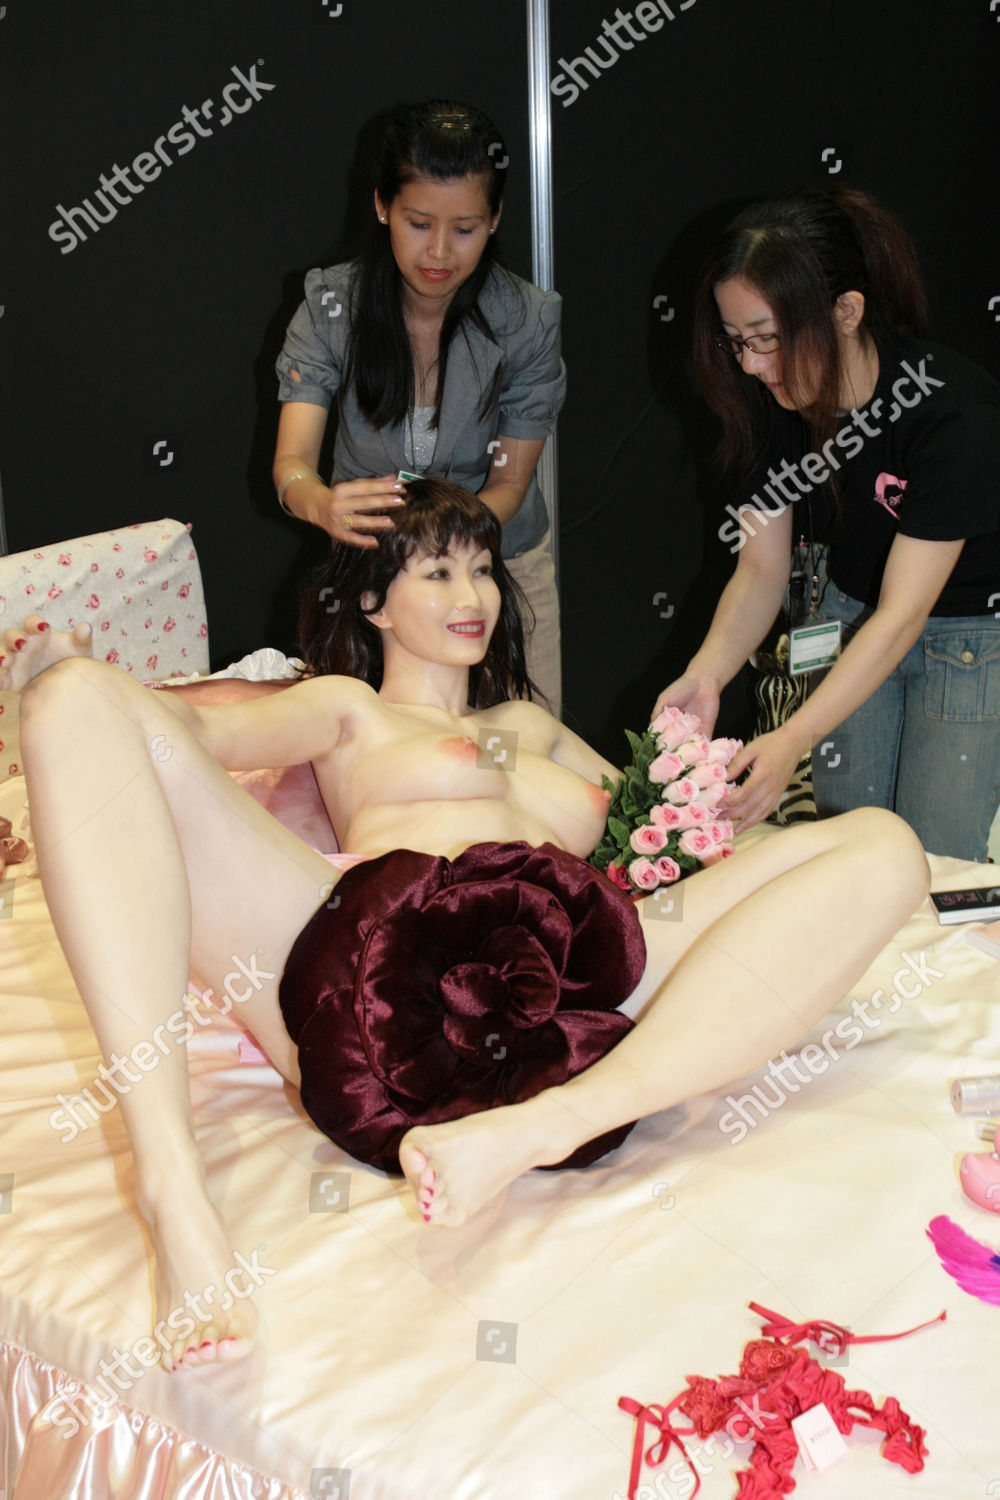 Opinion japan sex expo happens. Let's